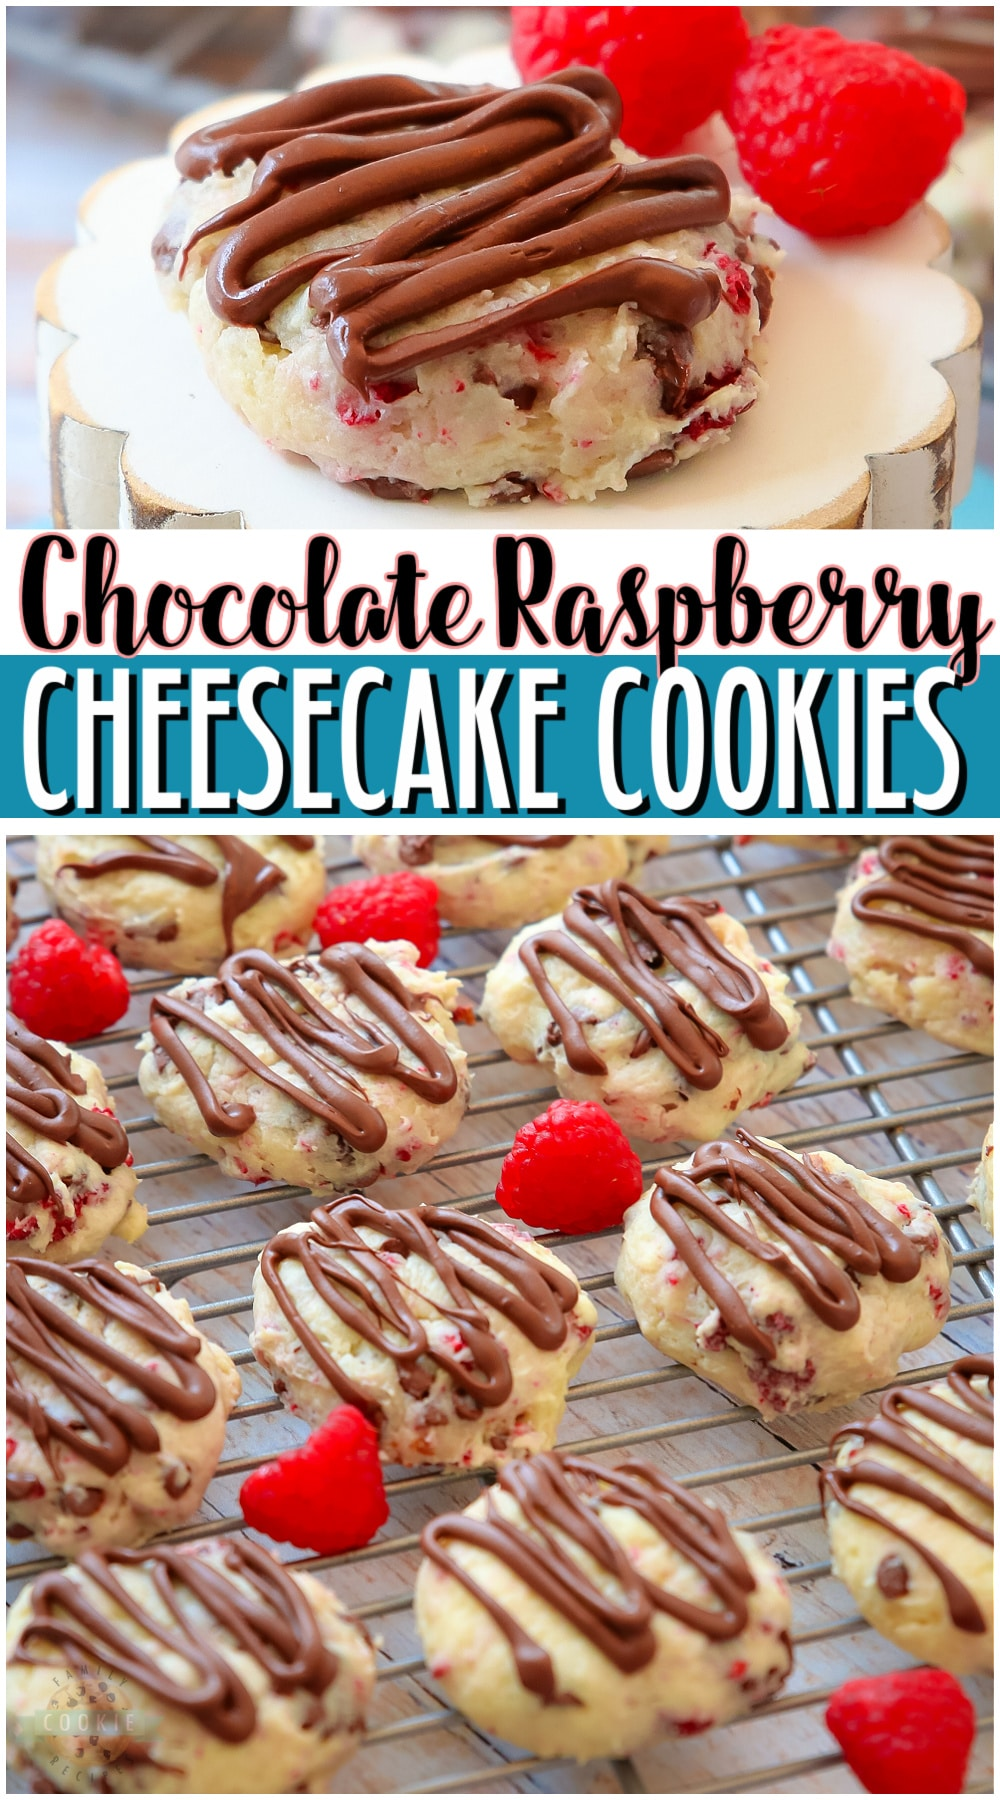 Chocolate Raspberry Cheesecake Cookies are indulgent cookies made with cream cheese, chocolate chips & raspberries! Soft cookies with bright raspberry cheesecake flavor that everyone loves! via @familycookierecipes